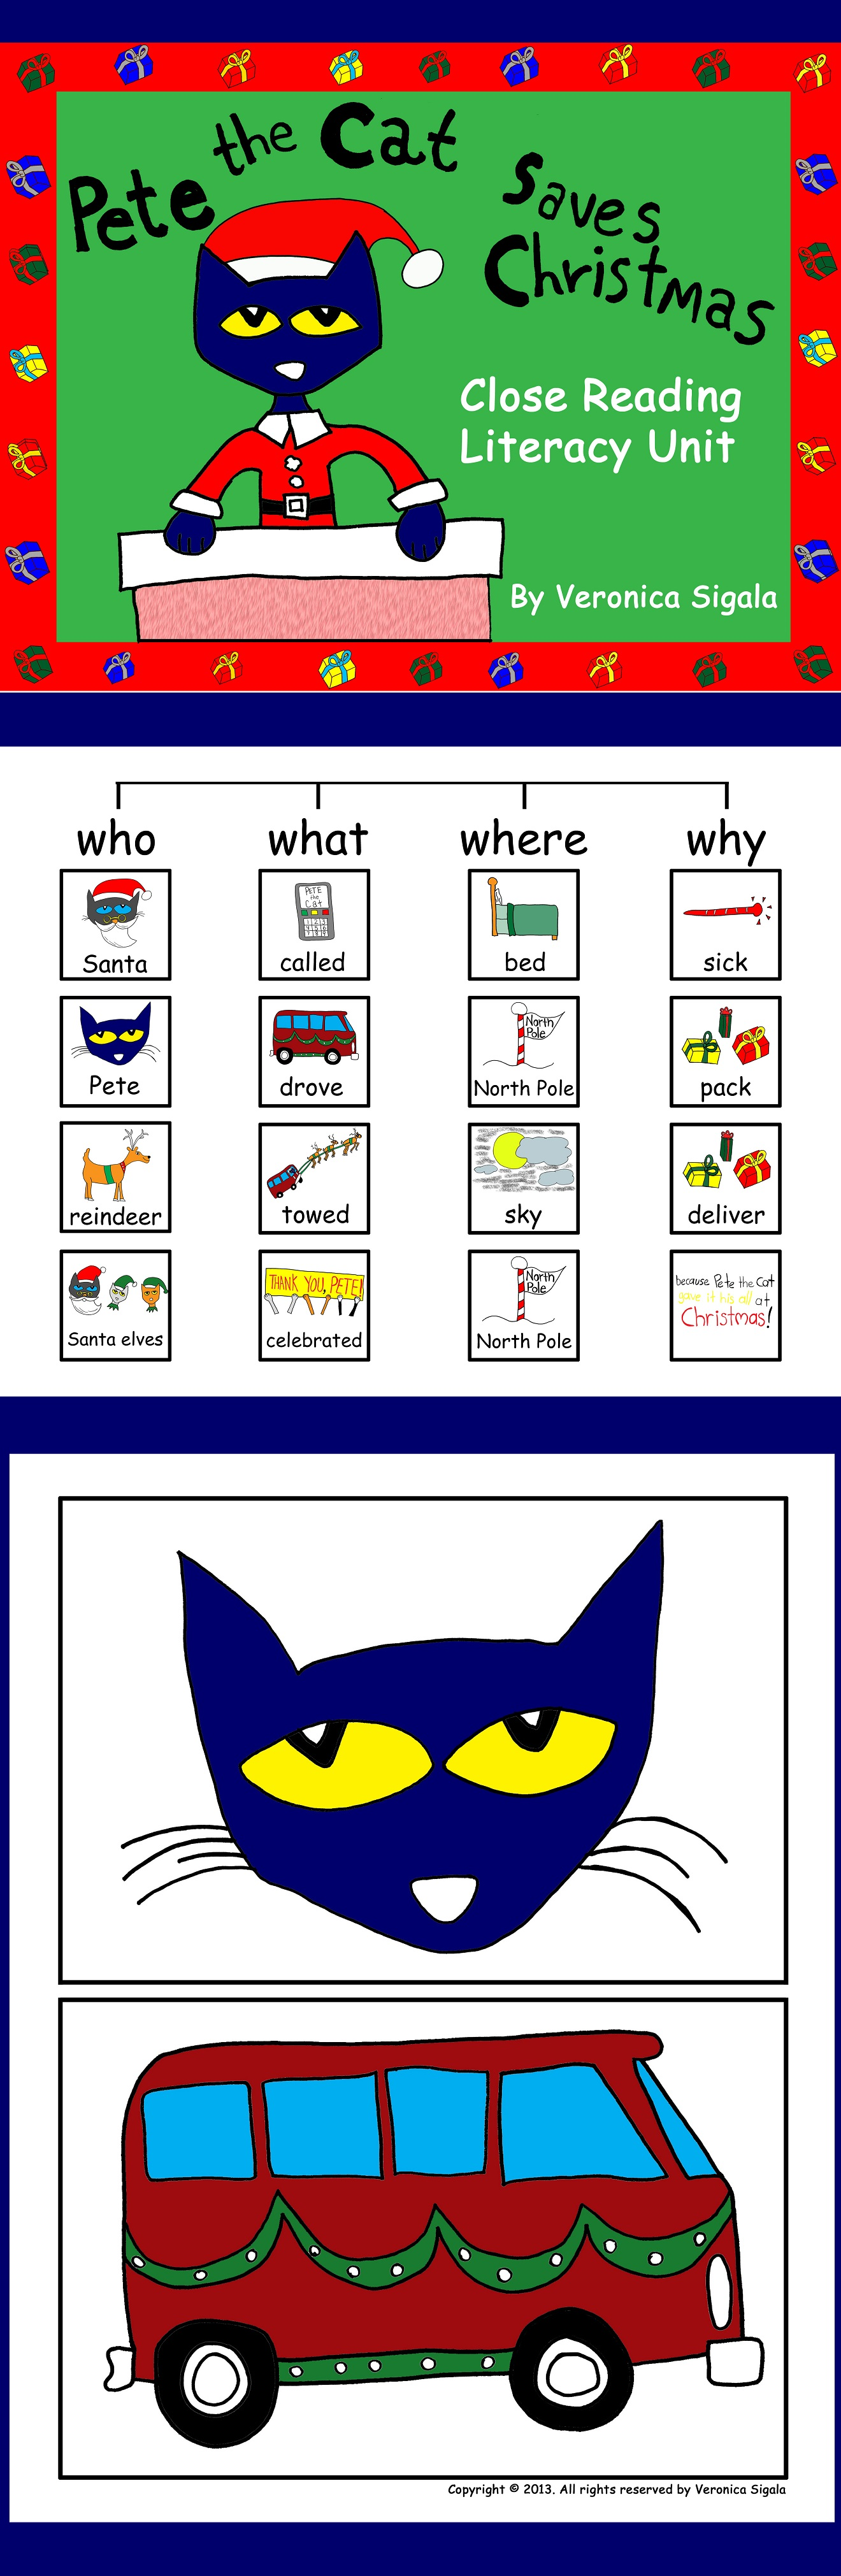 Pete The Cat Saves Christmas Close Reading Is Careful And